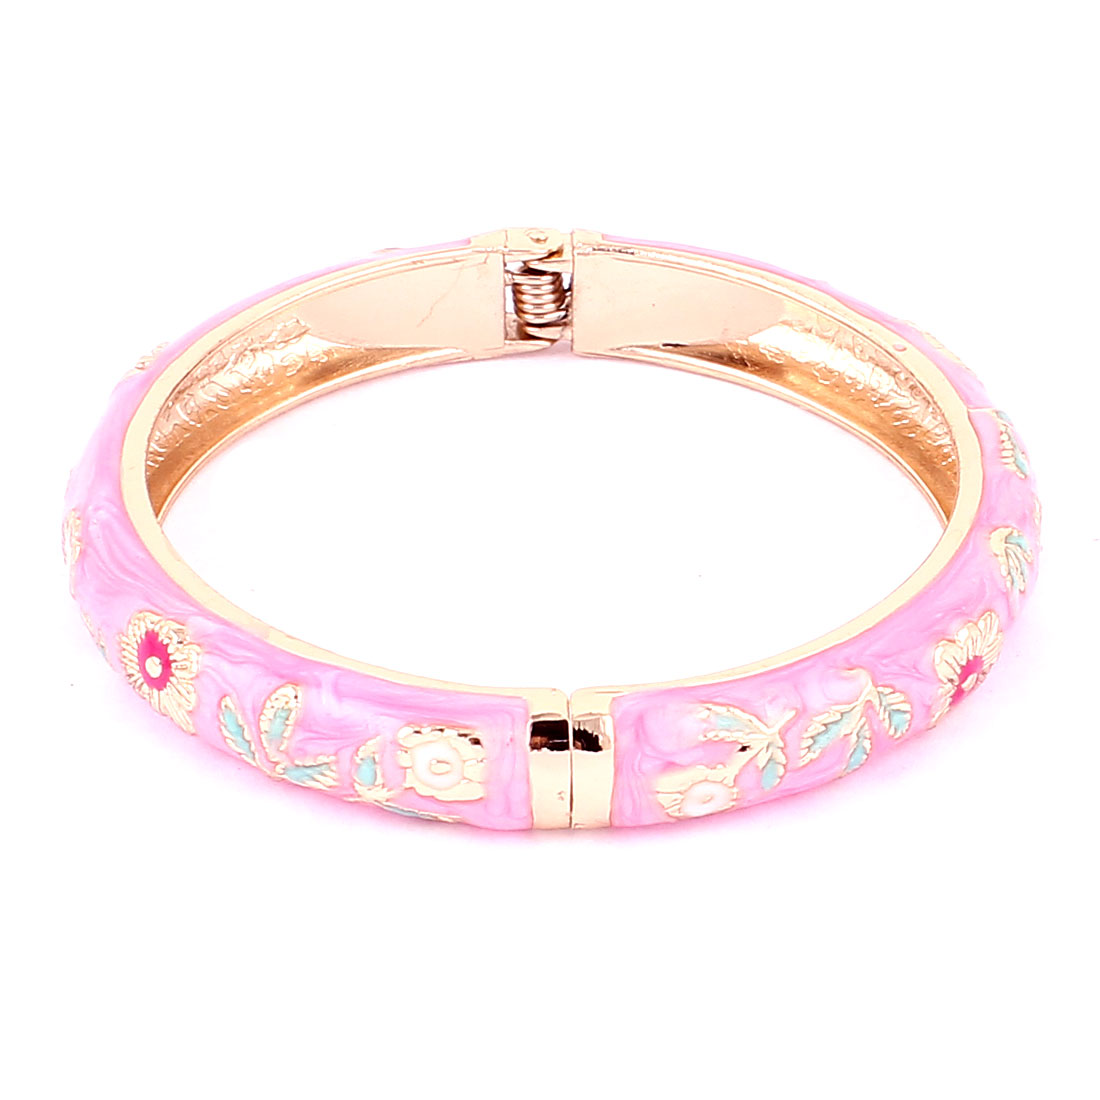 online buy wholesale bracelet spring hinges from china On how to make a spring hinge for jewelry